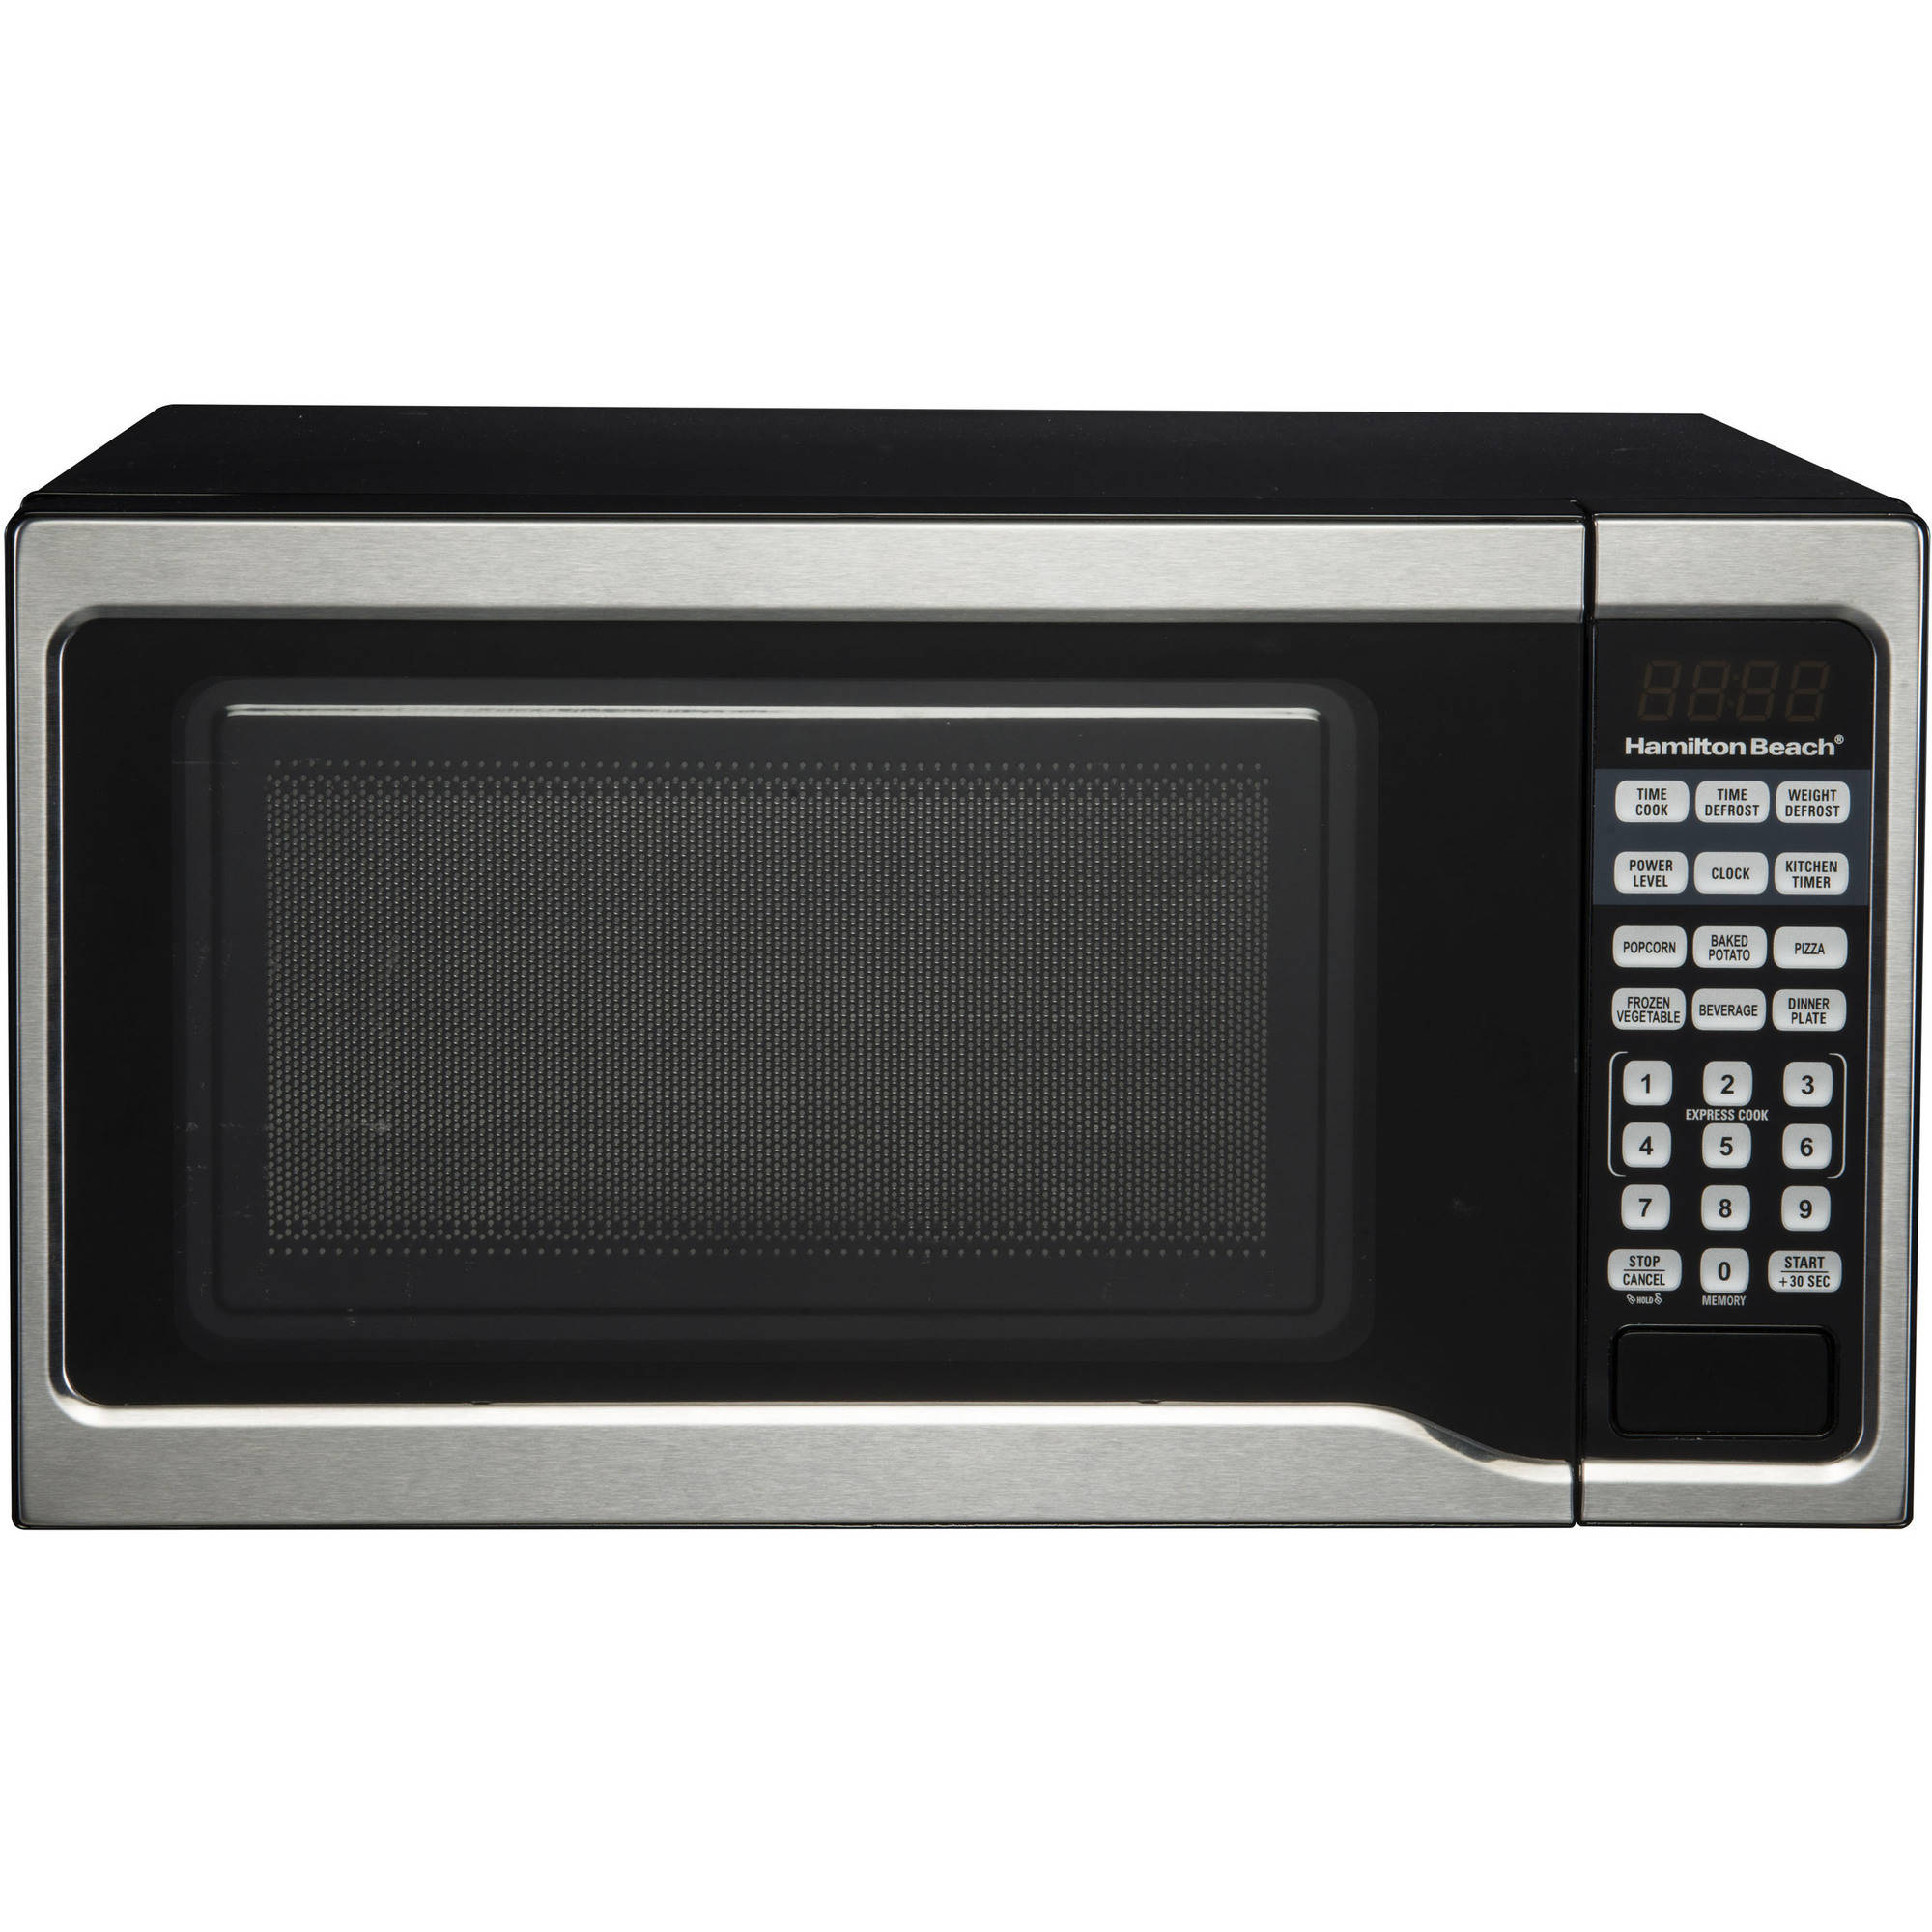 Oster 1.3-cu. ft. Microwave Oven with Grill - Walmart.com